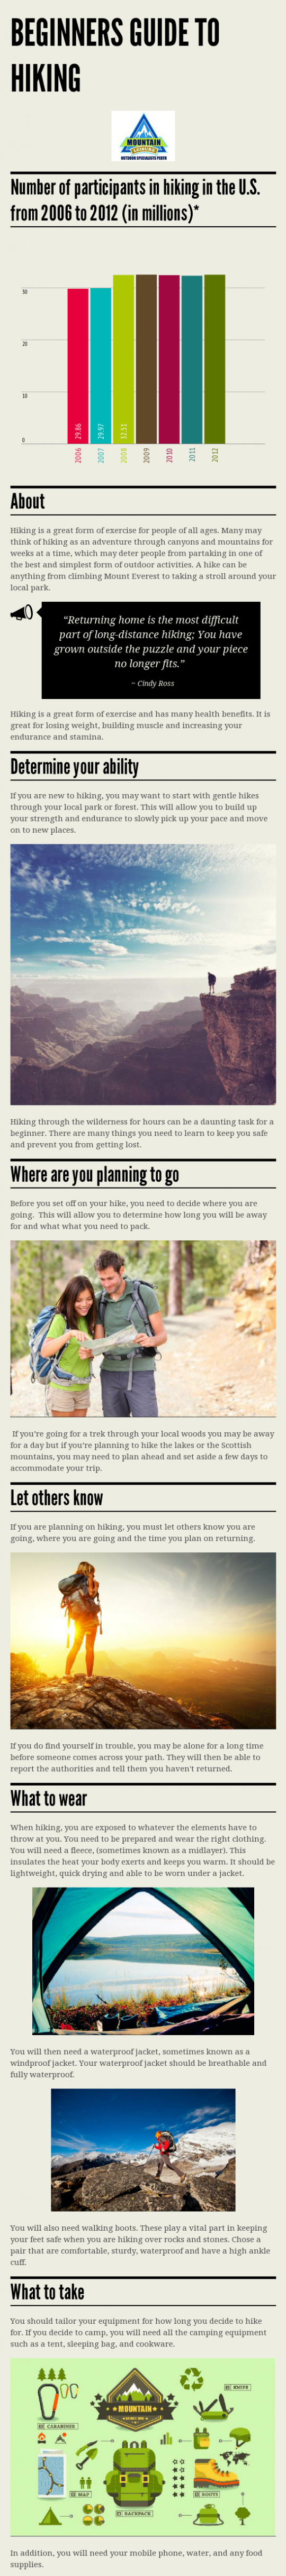 The Beginners Guide to Hiking